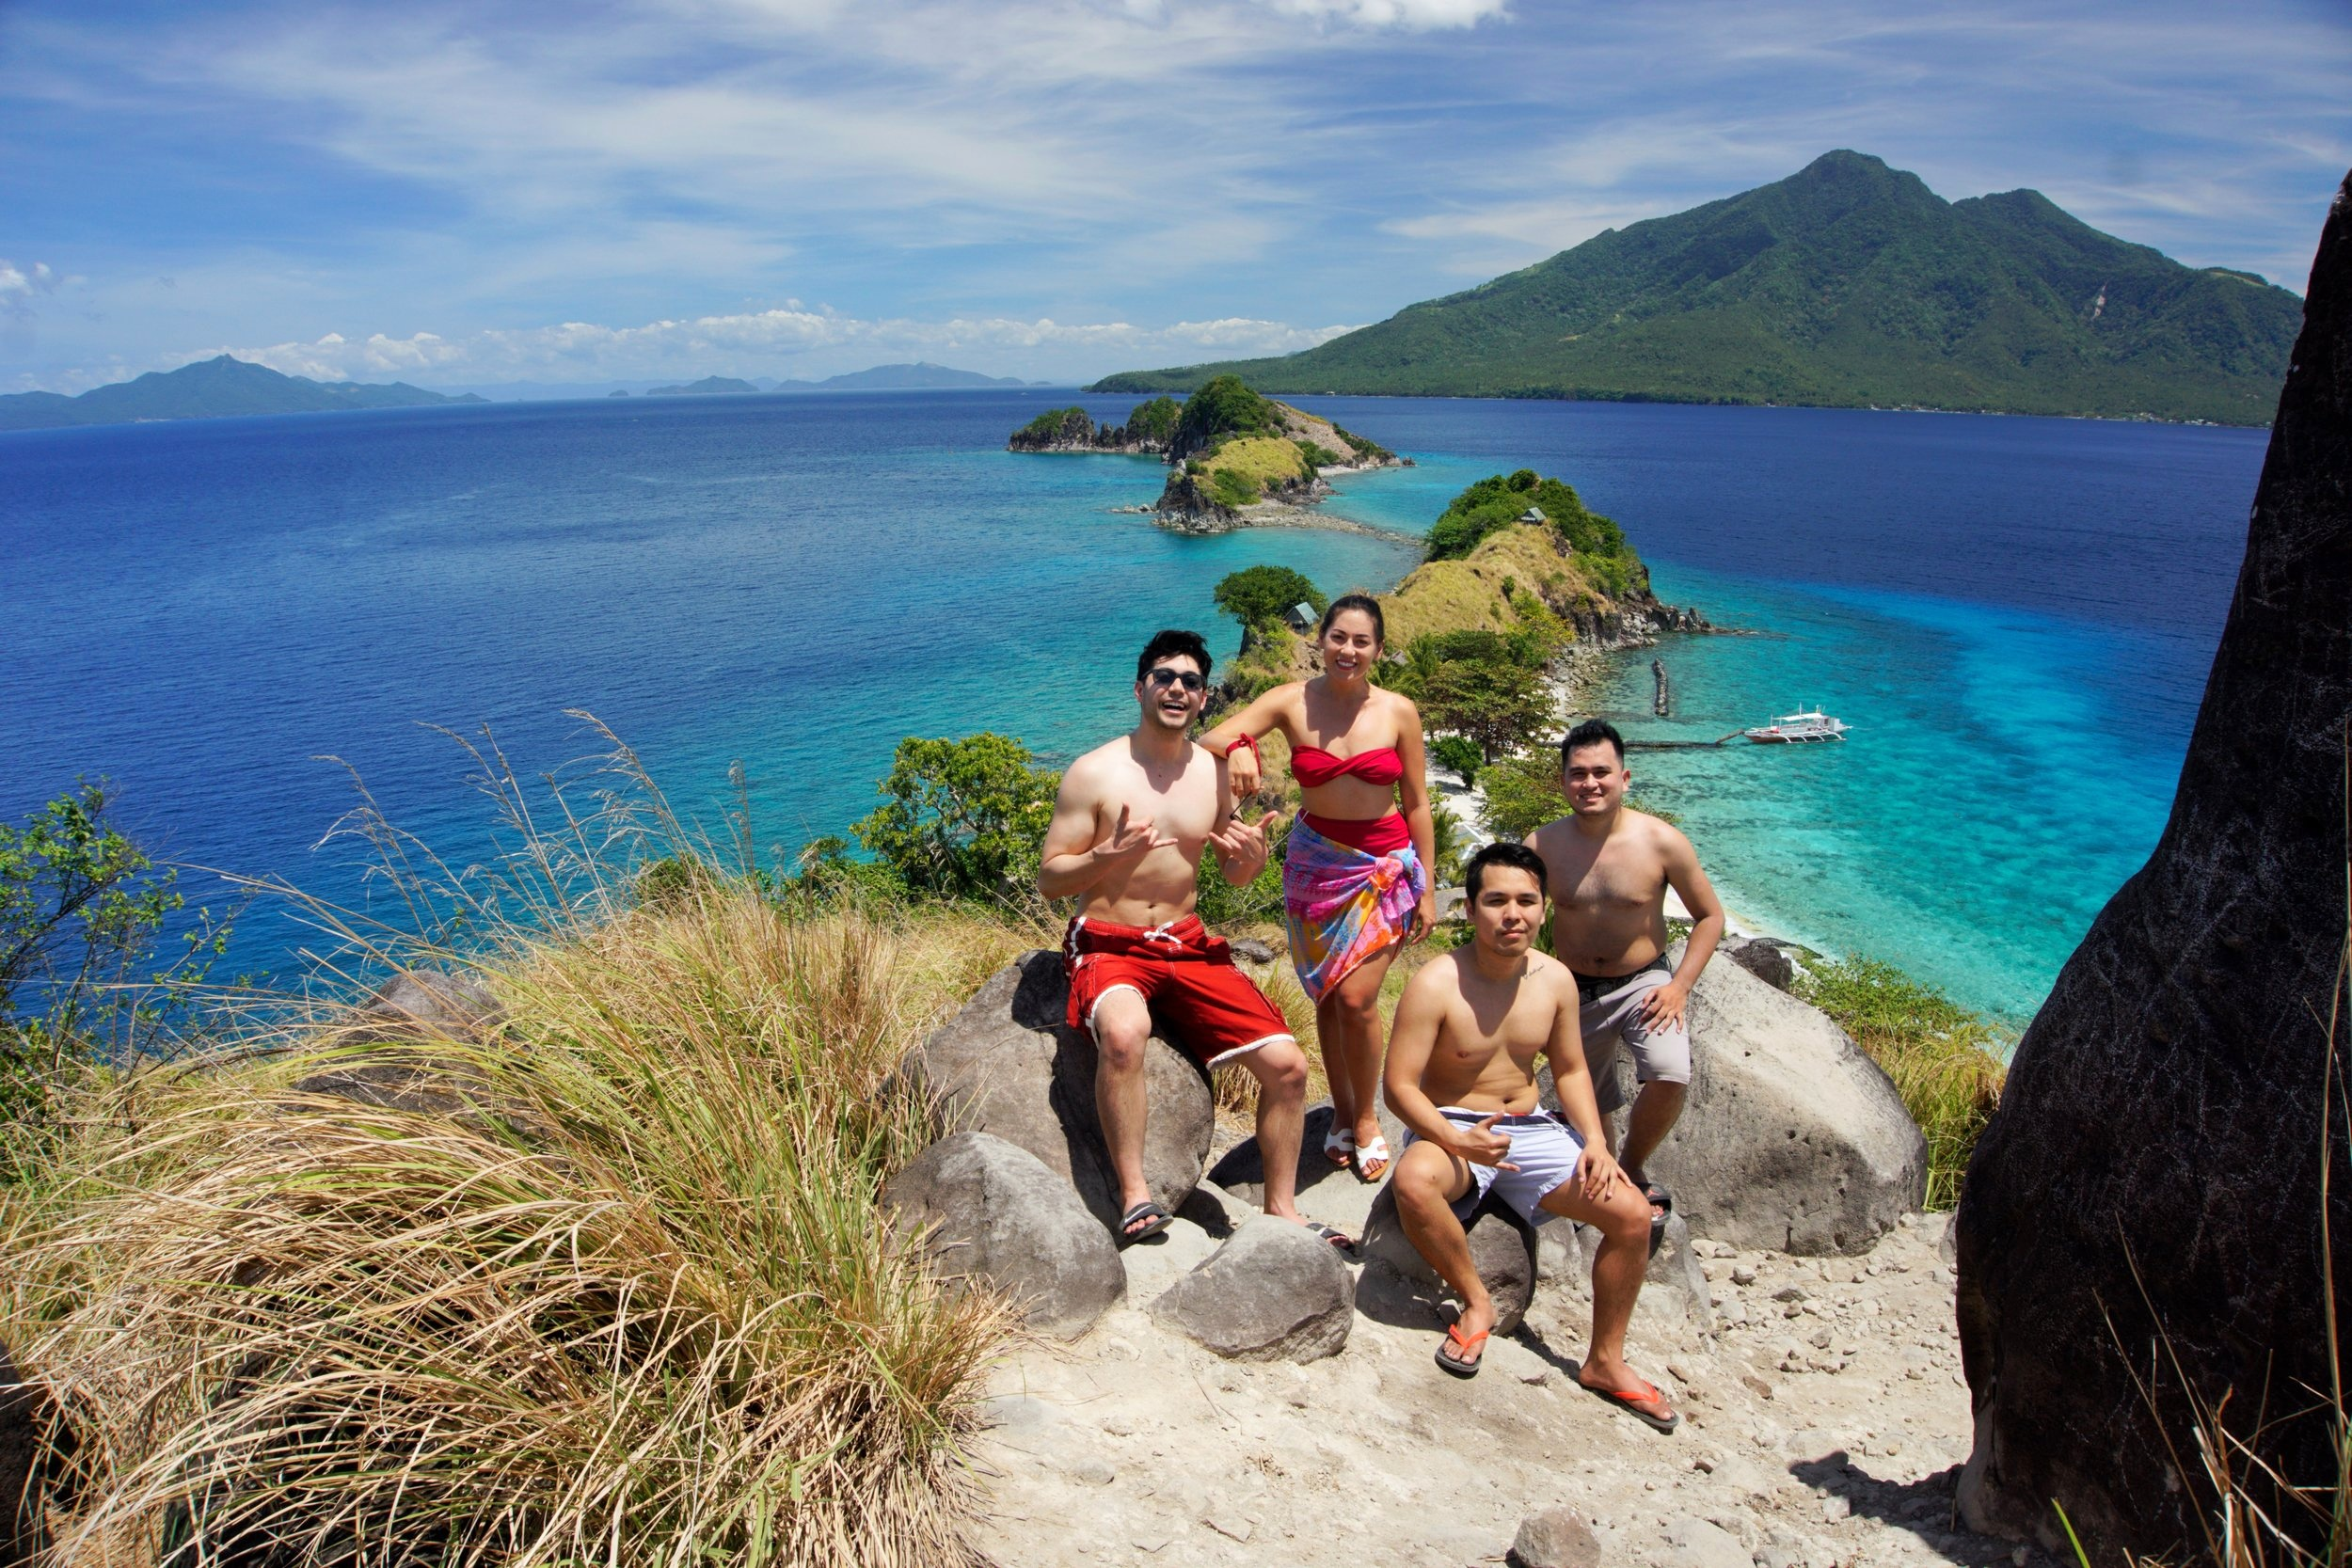 Cousin adventures on Sambawan Island, PH!